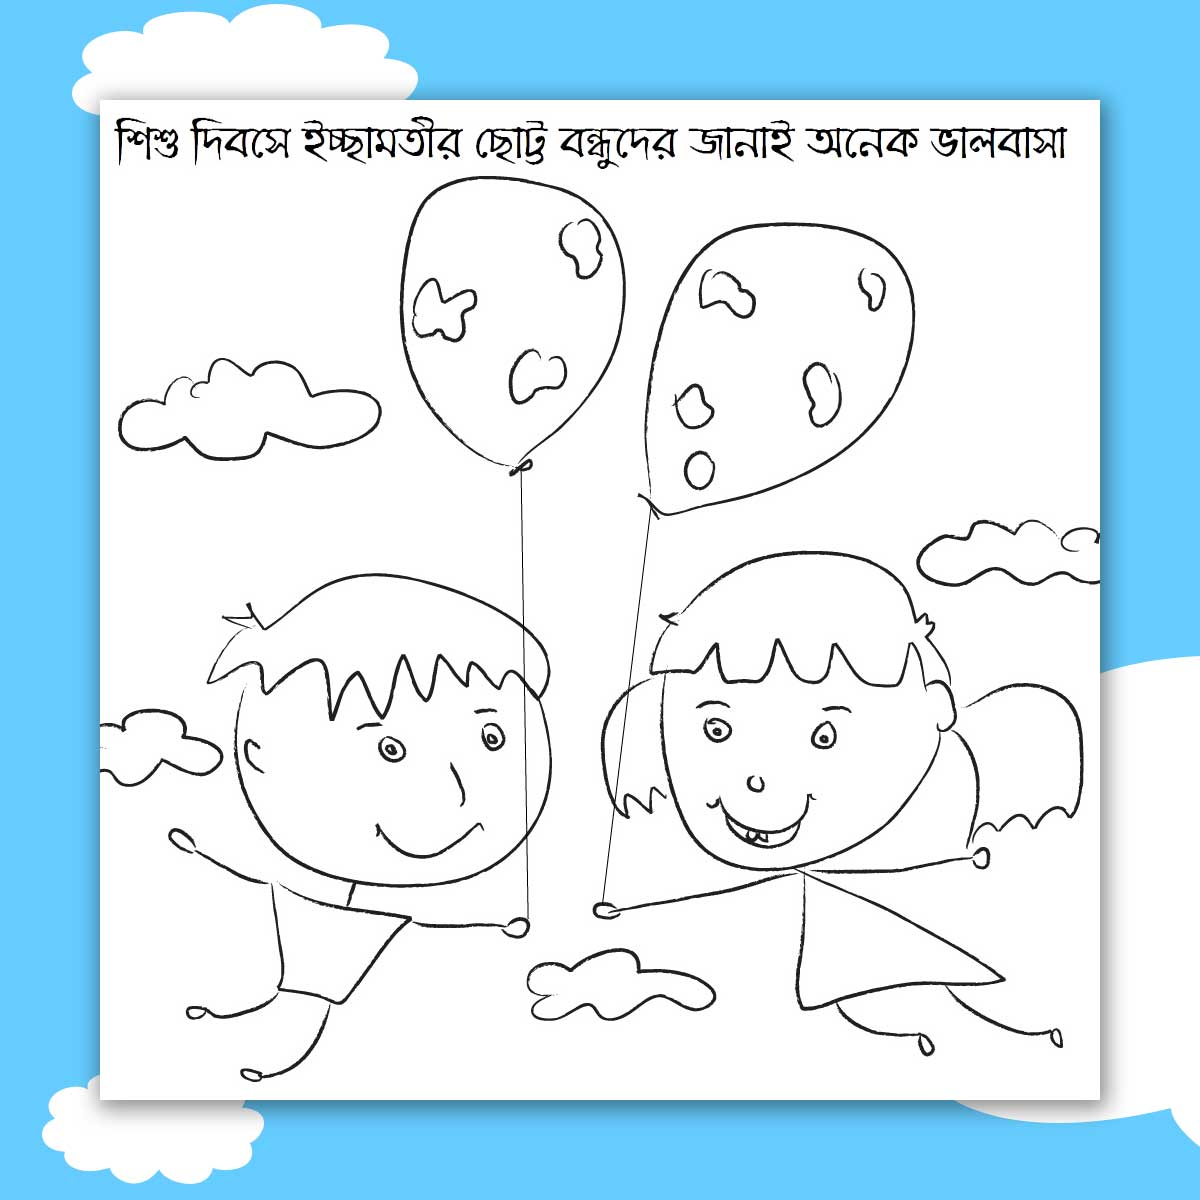 ichchhamoti-wishes-on-childrens-day-2013